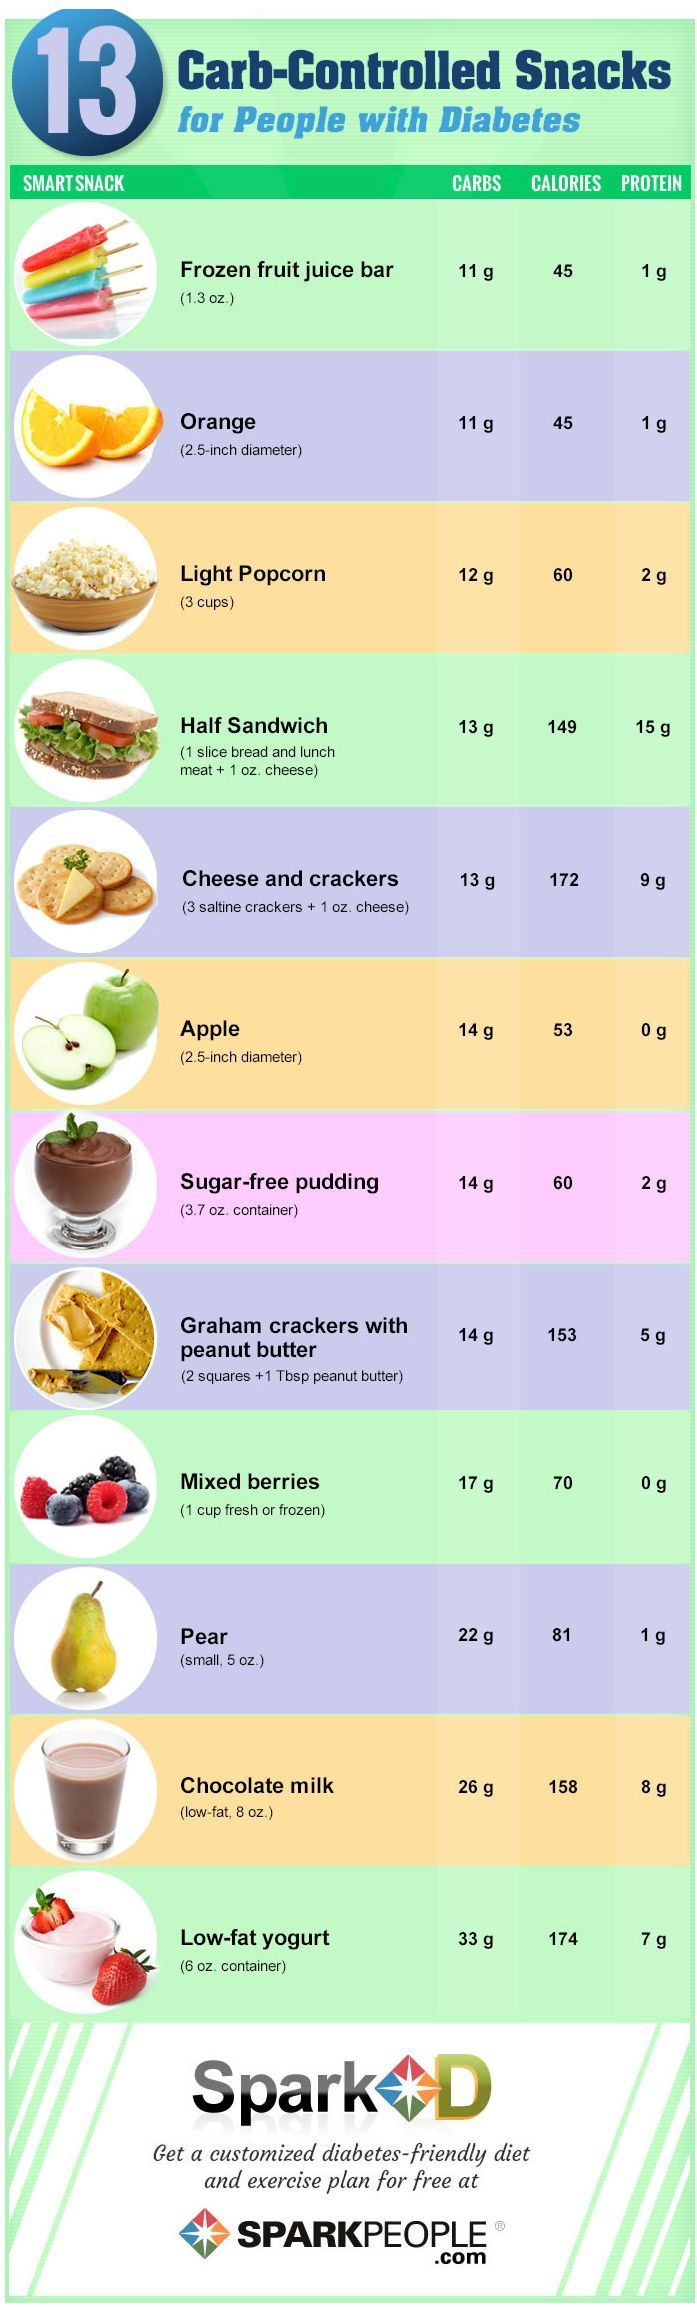 13 smart, carb-controlled snacks for people with diabetes | via @SparkPeople #food #diet #nutrition